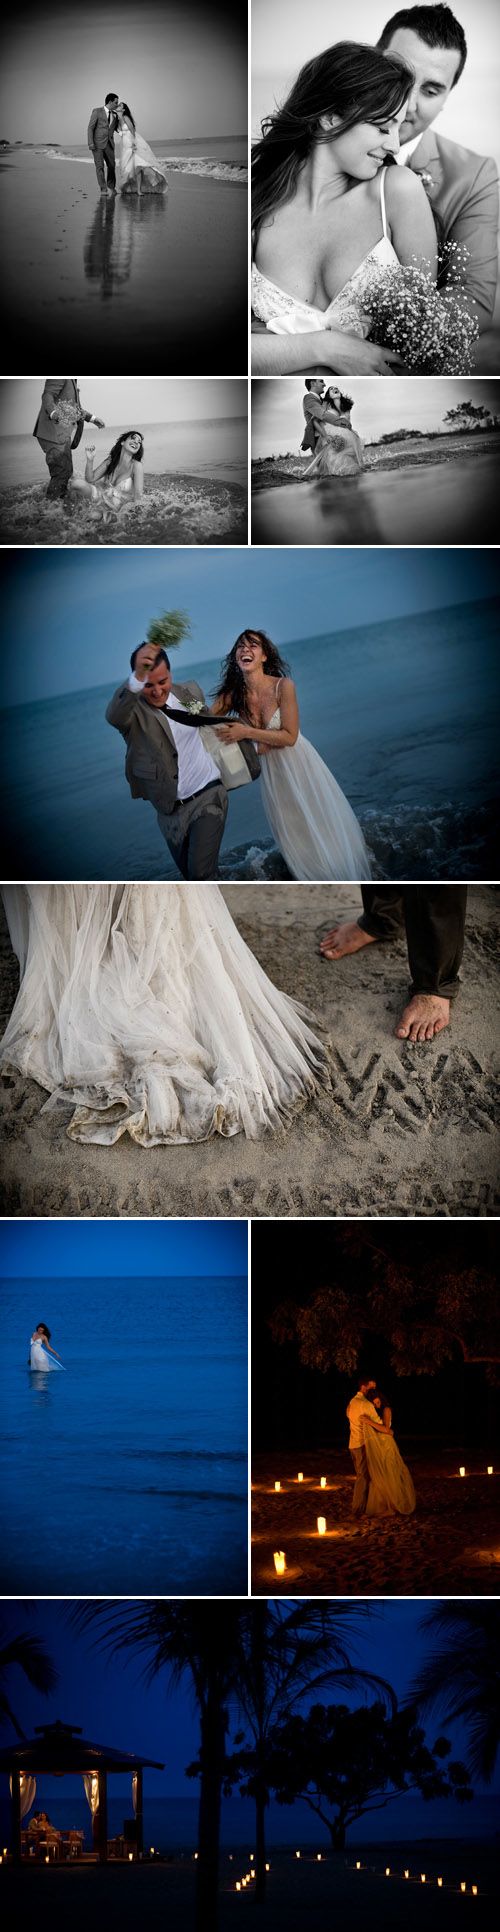 unique destination elopement at Nikki Beach Resort, Playa Blanca, Panama photography by Davina plus Daniel